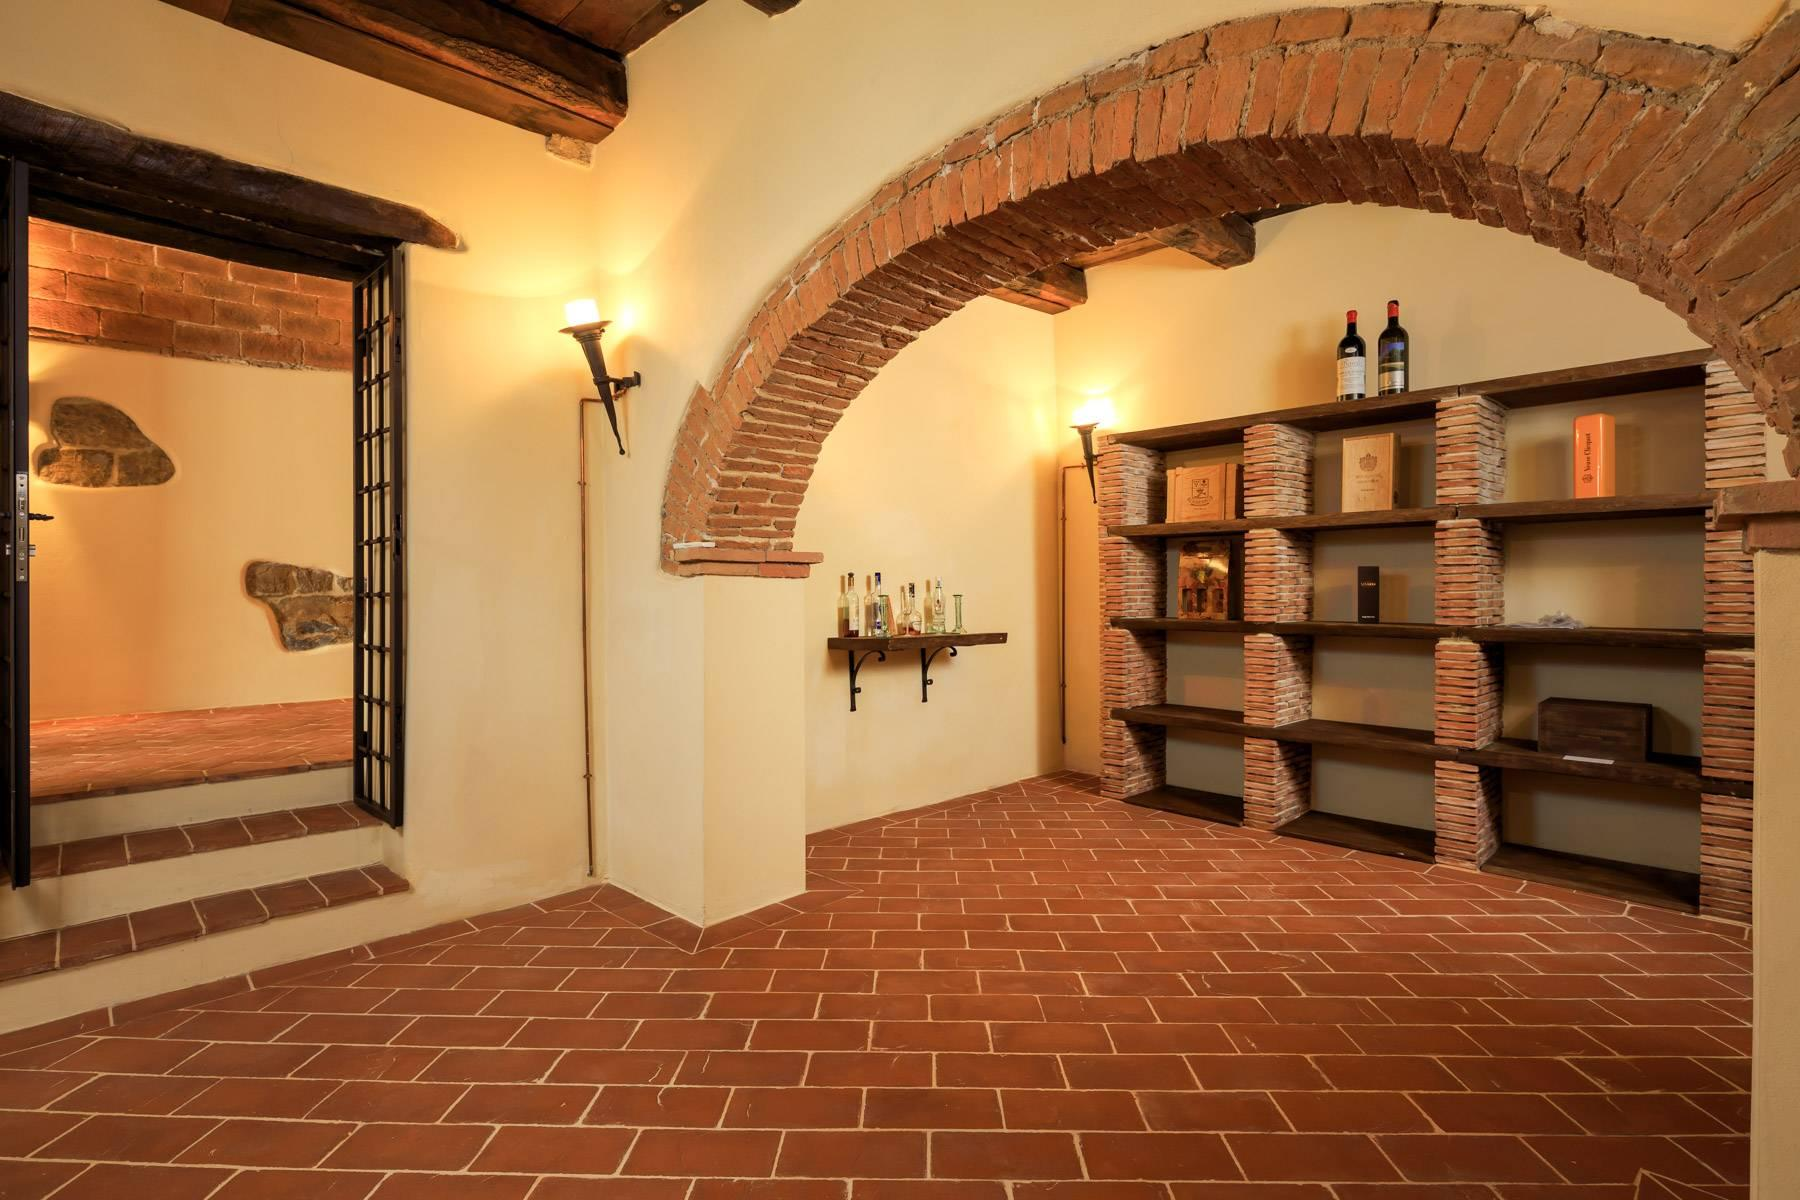 Marvelous estate with views over the Casentino valley - 21